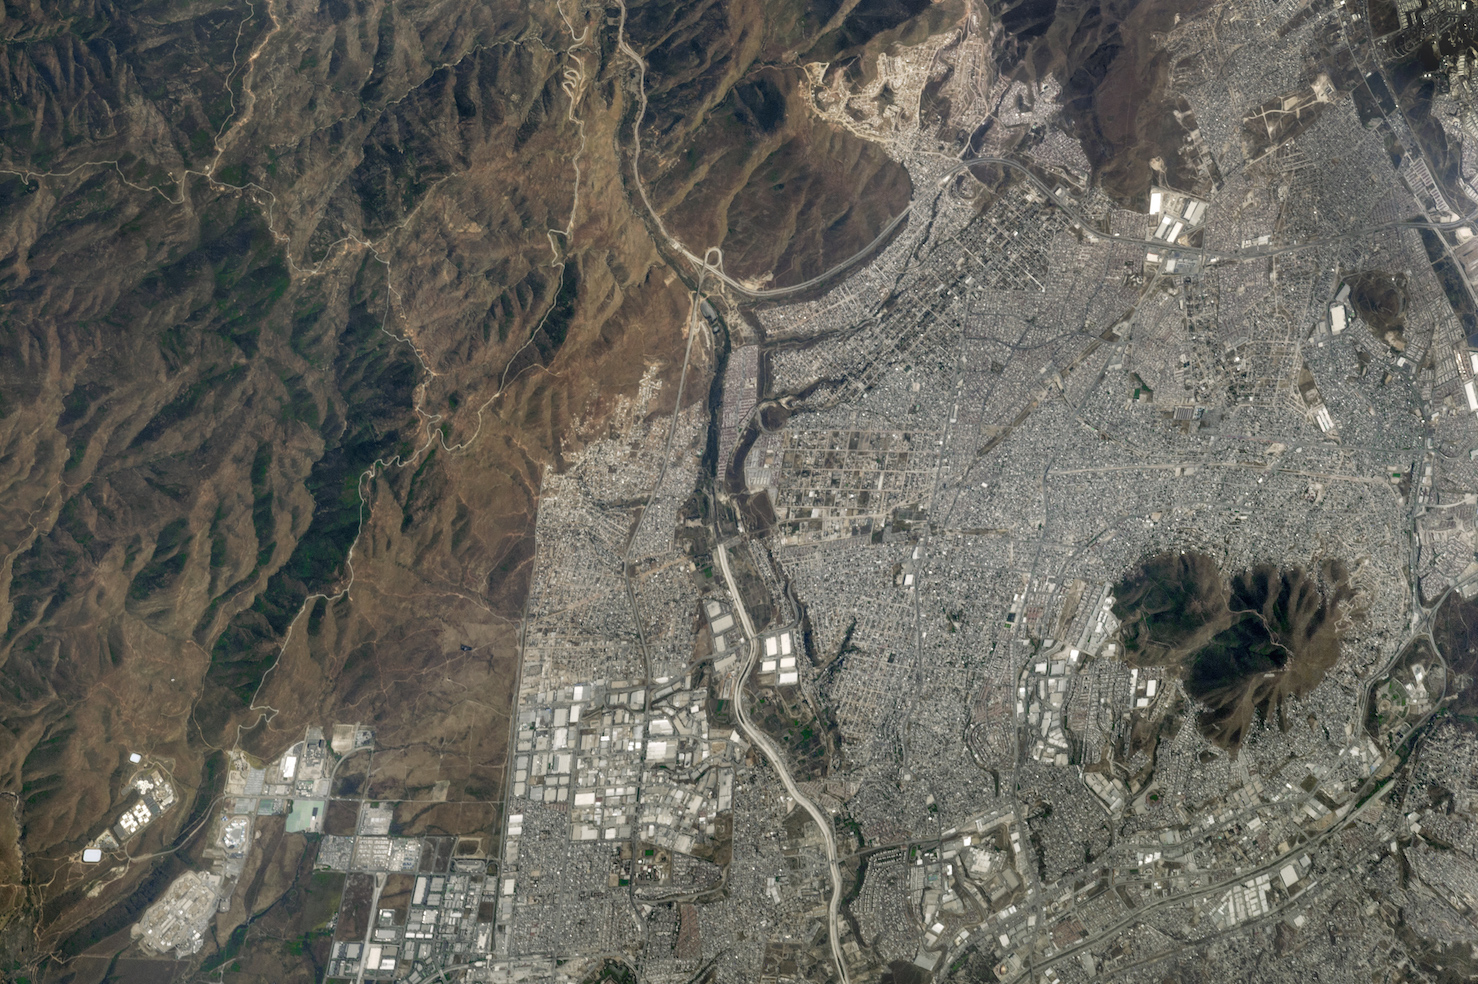 Today's Image of the Day comes thanks to the NASA Earth Observatory and features a look at the city of Tijuana on the U.S.-Mexico border.